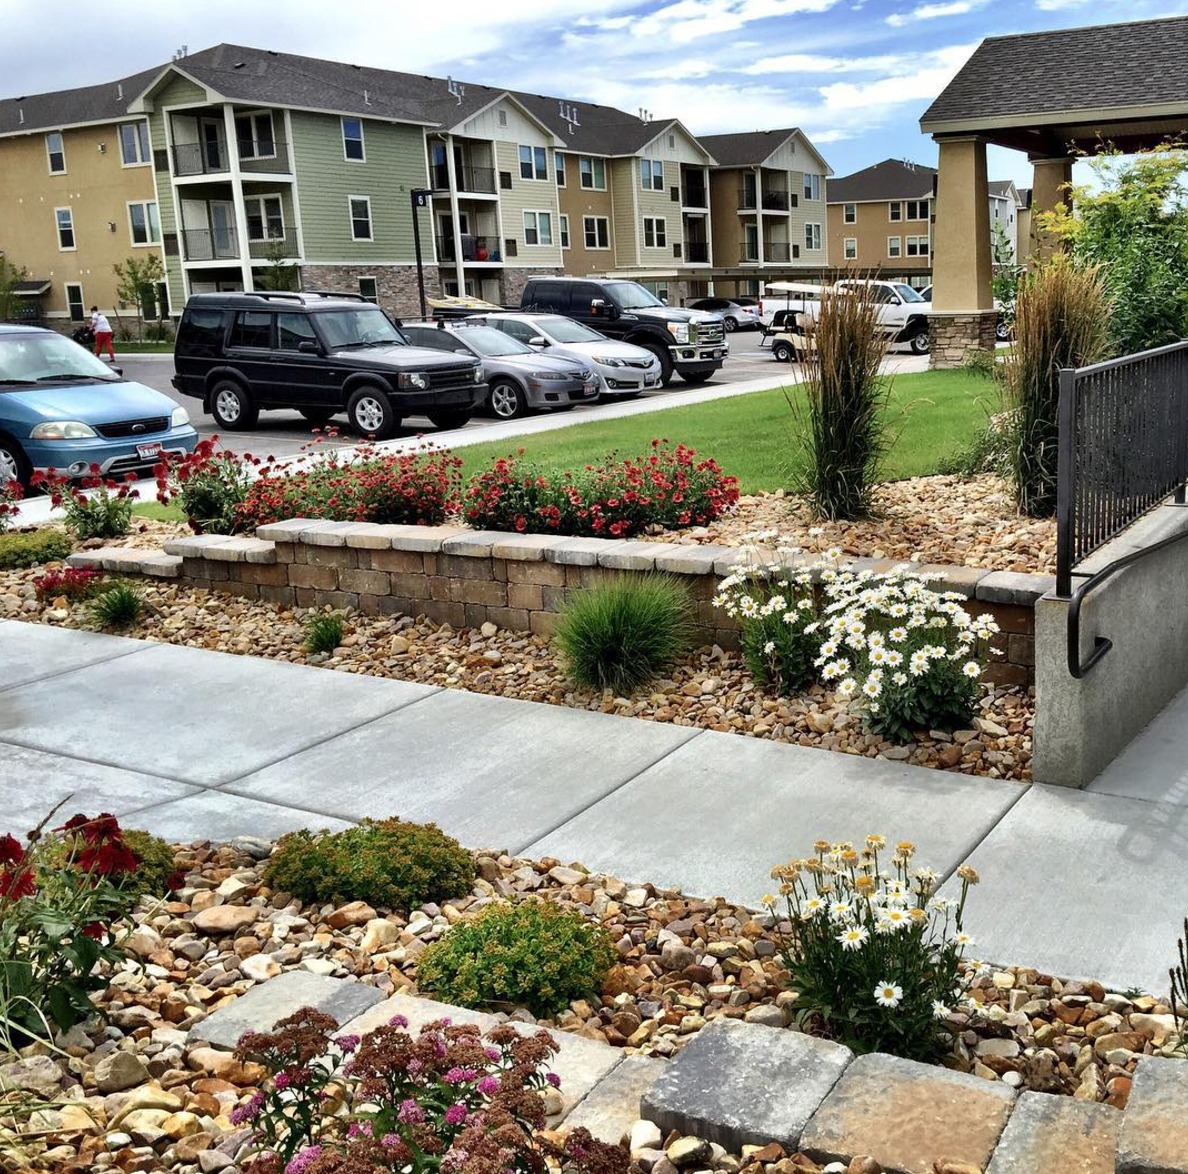 Commercial Property Landscape Design: Landscaping Ideas For Apartment Buildings (To Increase Occupancy And Retention In 2017